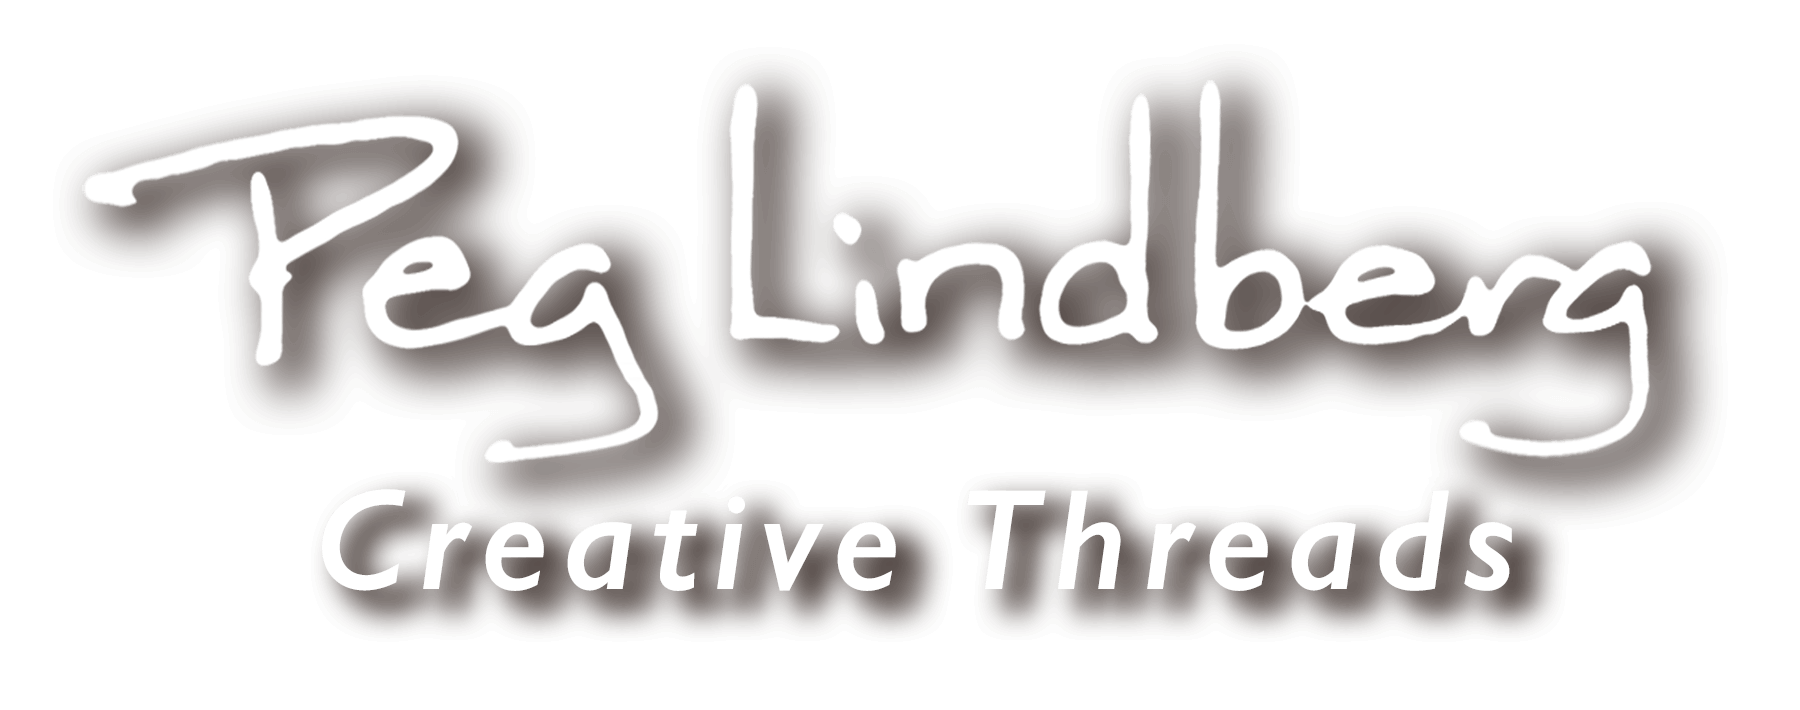 Peg Lindberg Creative Threads